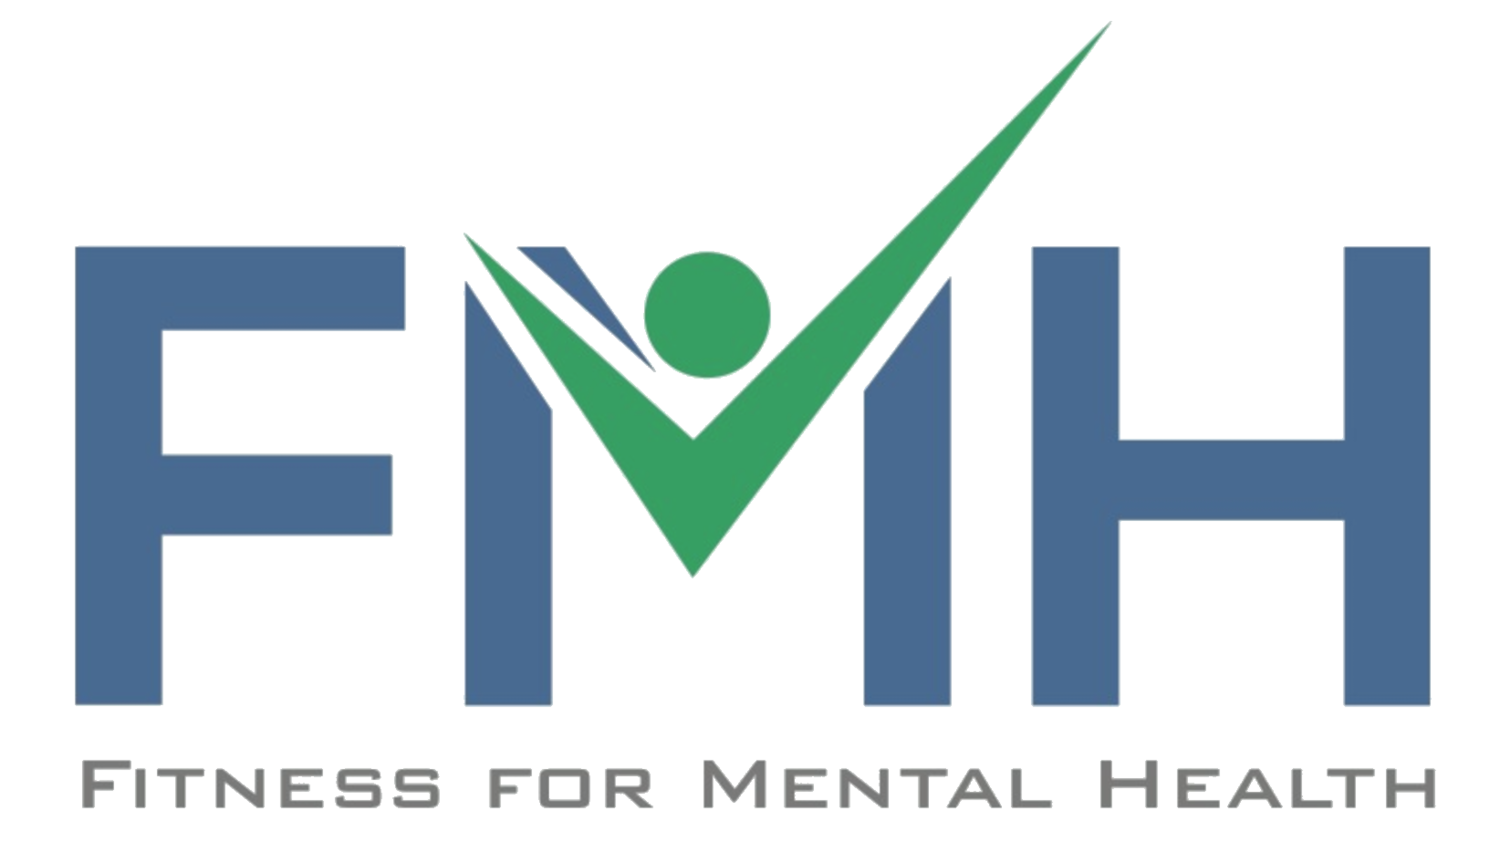 Fitness for Mental Health